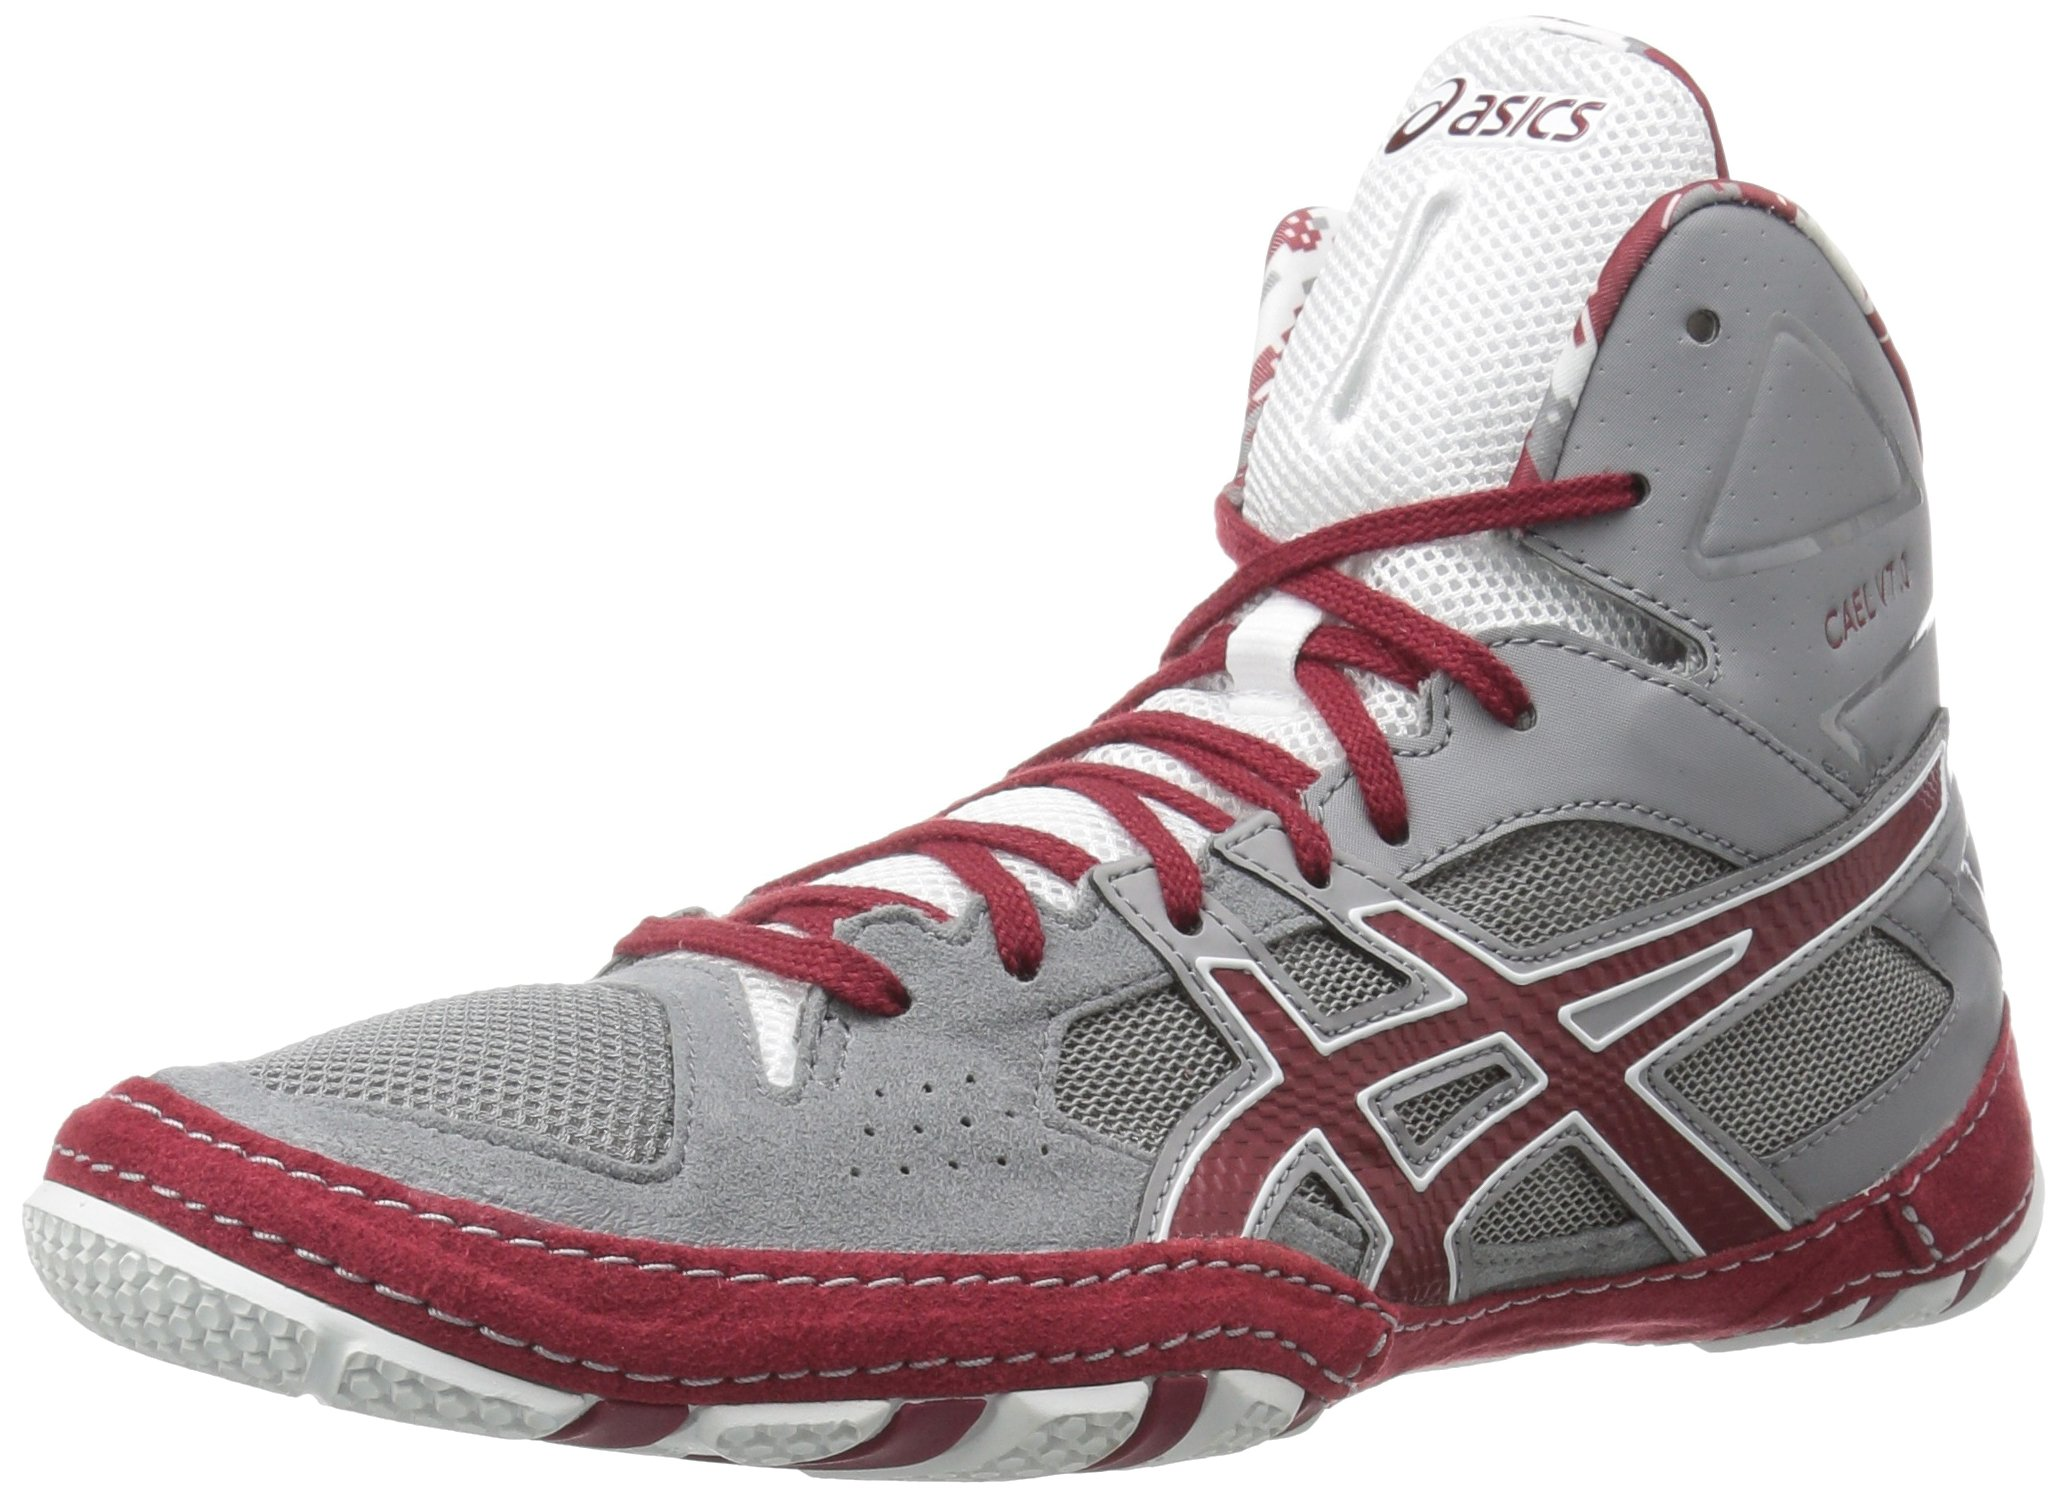 ASICS Men's Cael V7.0 Wrestling-Shoes, Aluminum/Burgundy/White, 12 Medium US